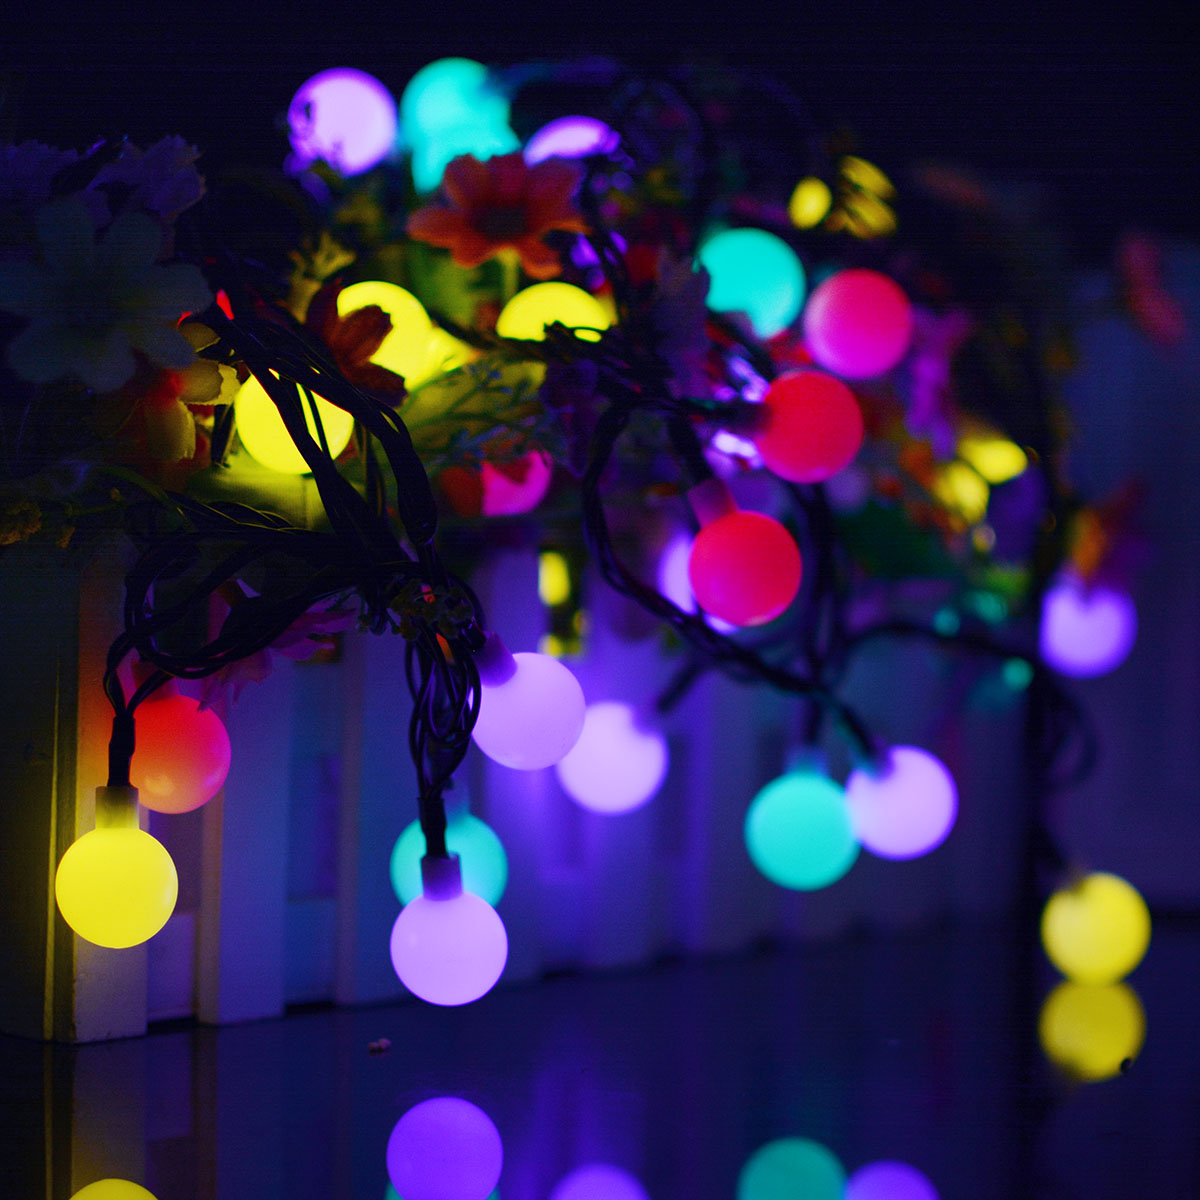 30LEDs/60LEDs 6M/10.5M Solar Powered LED Christmas Light Ball String Light for Home Garden Lawn Party Decor 30 lights white ball-8 mode - color